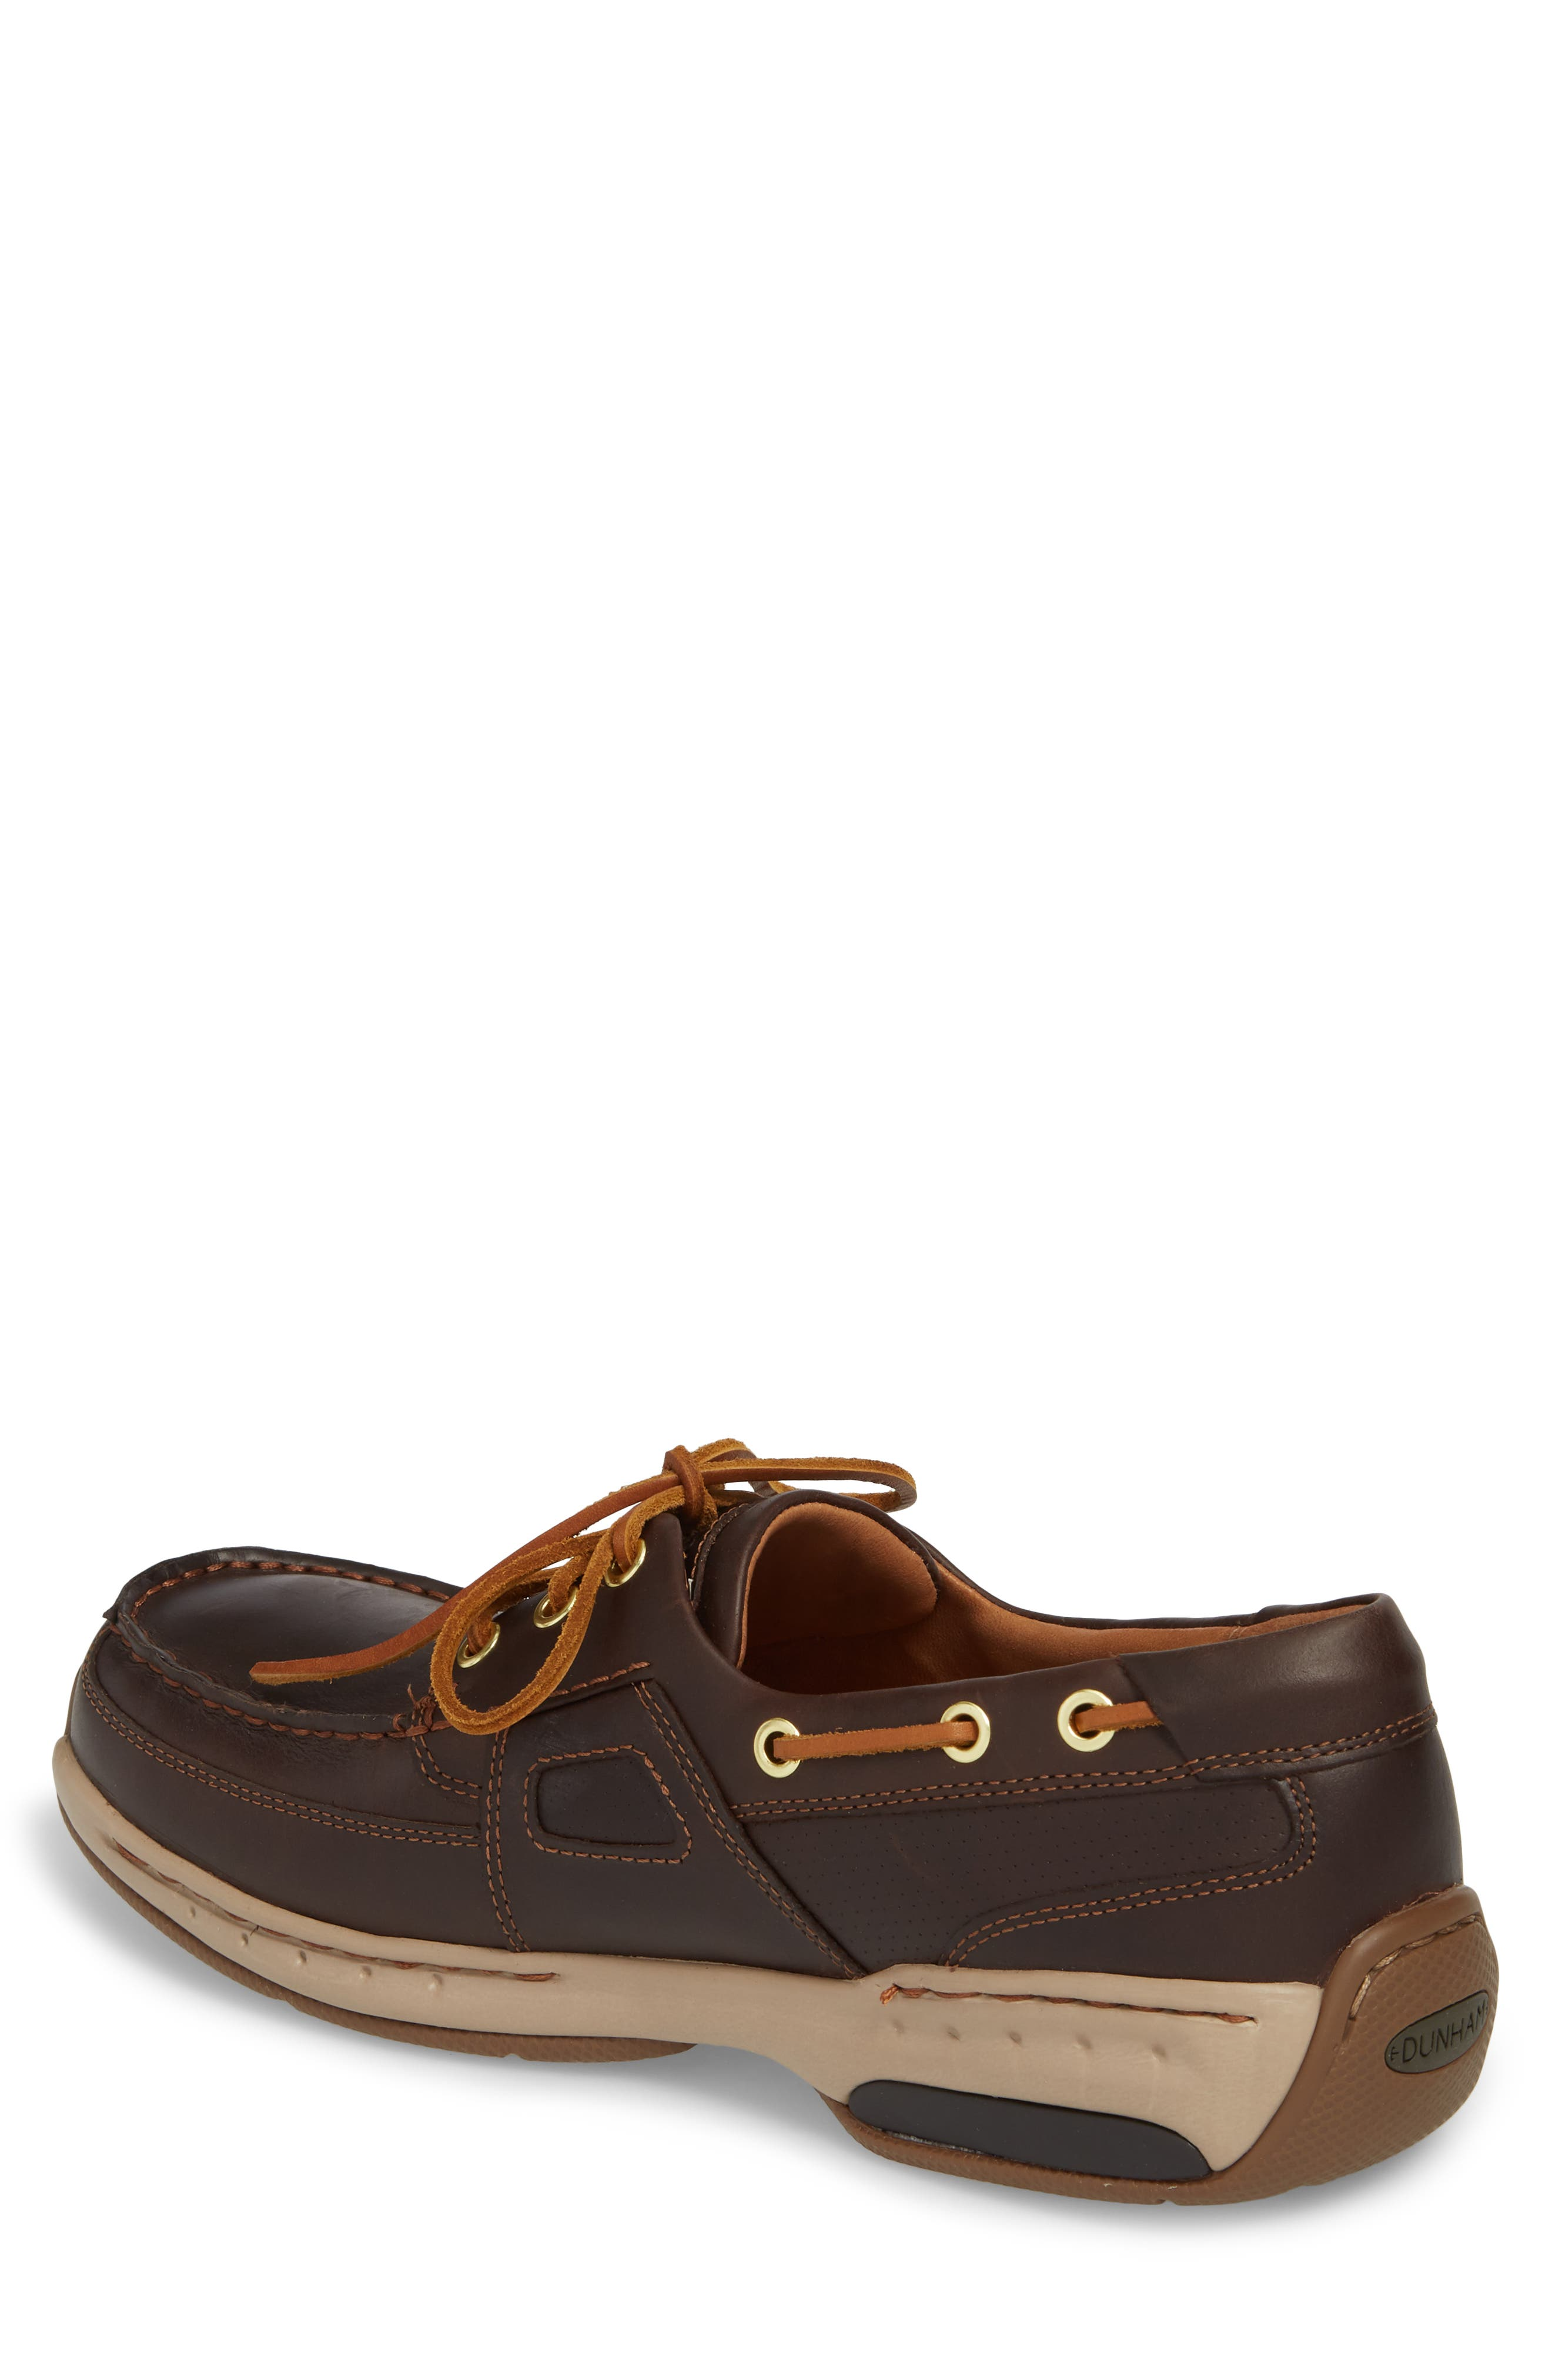 LTD Water Resistant Boat Shoe,                             Alternate thumbnail 2, color,                             TAN LEATHER